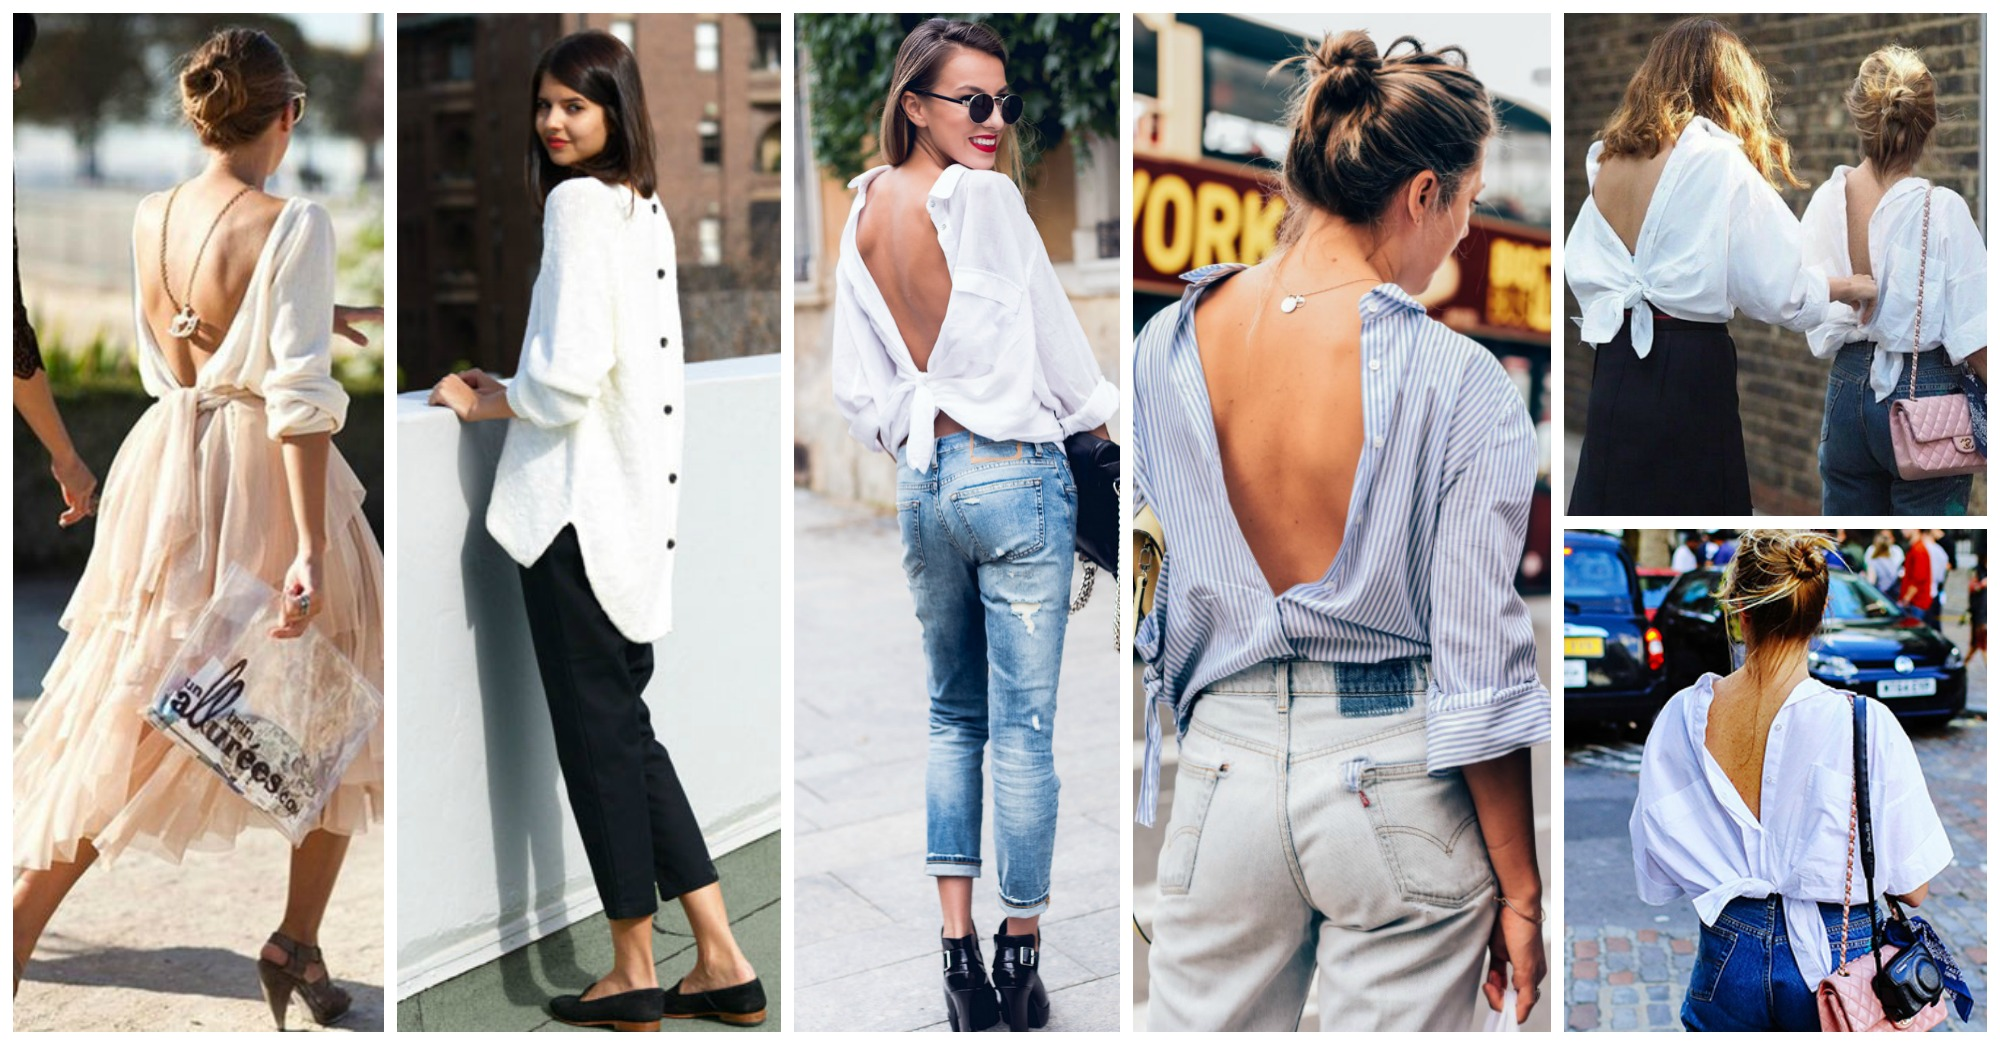 Trend Alert: Backward Shirts